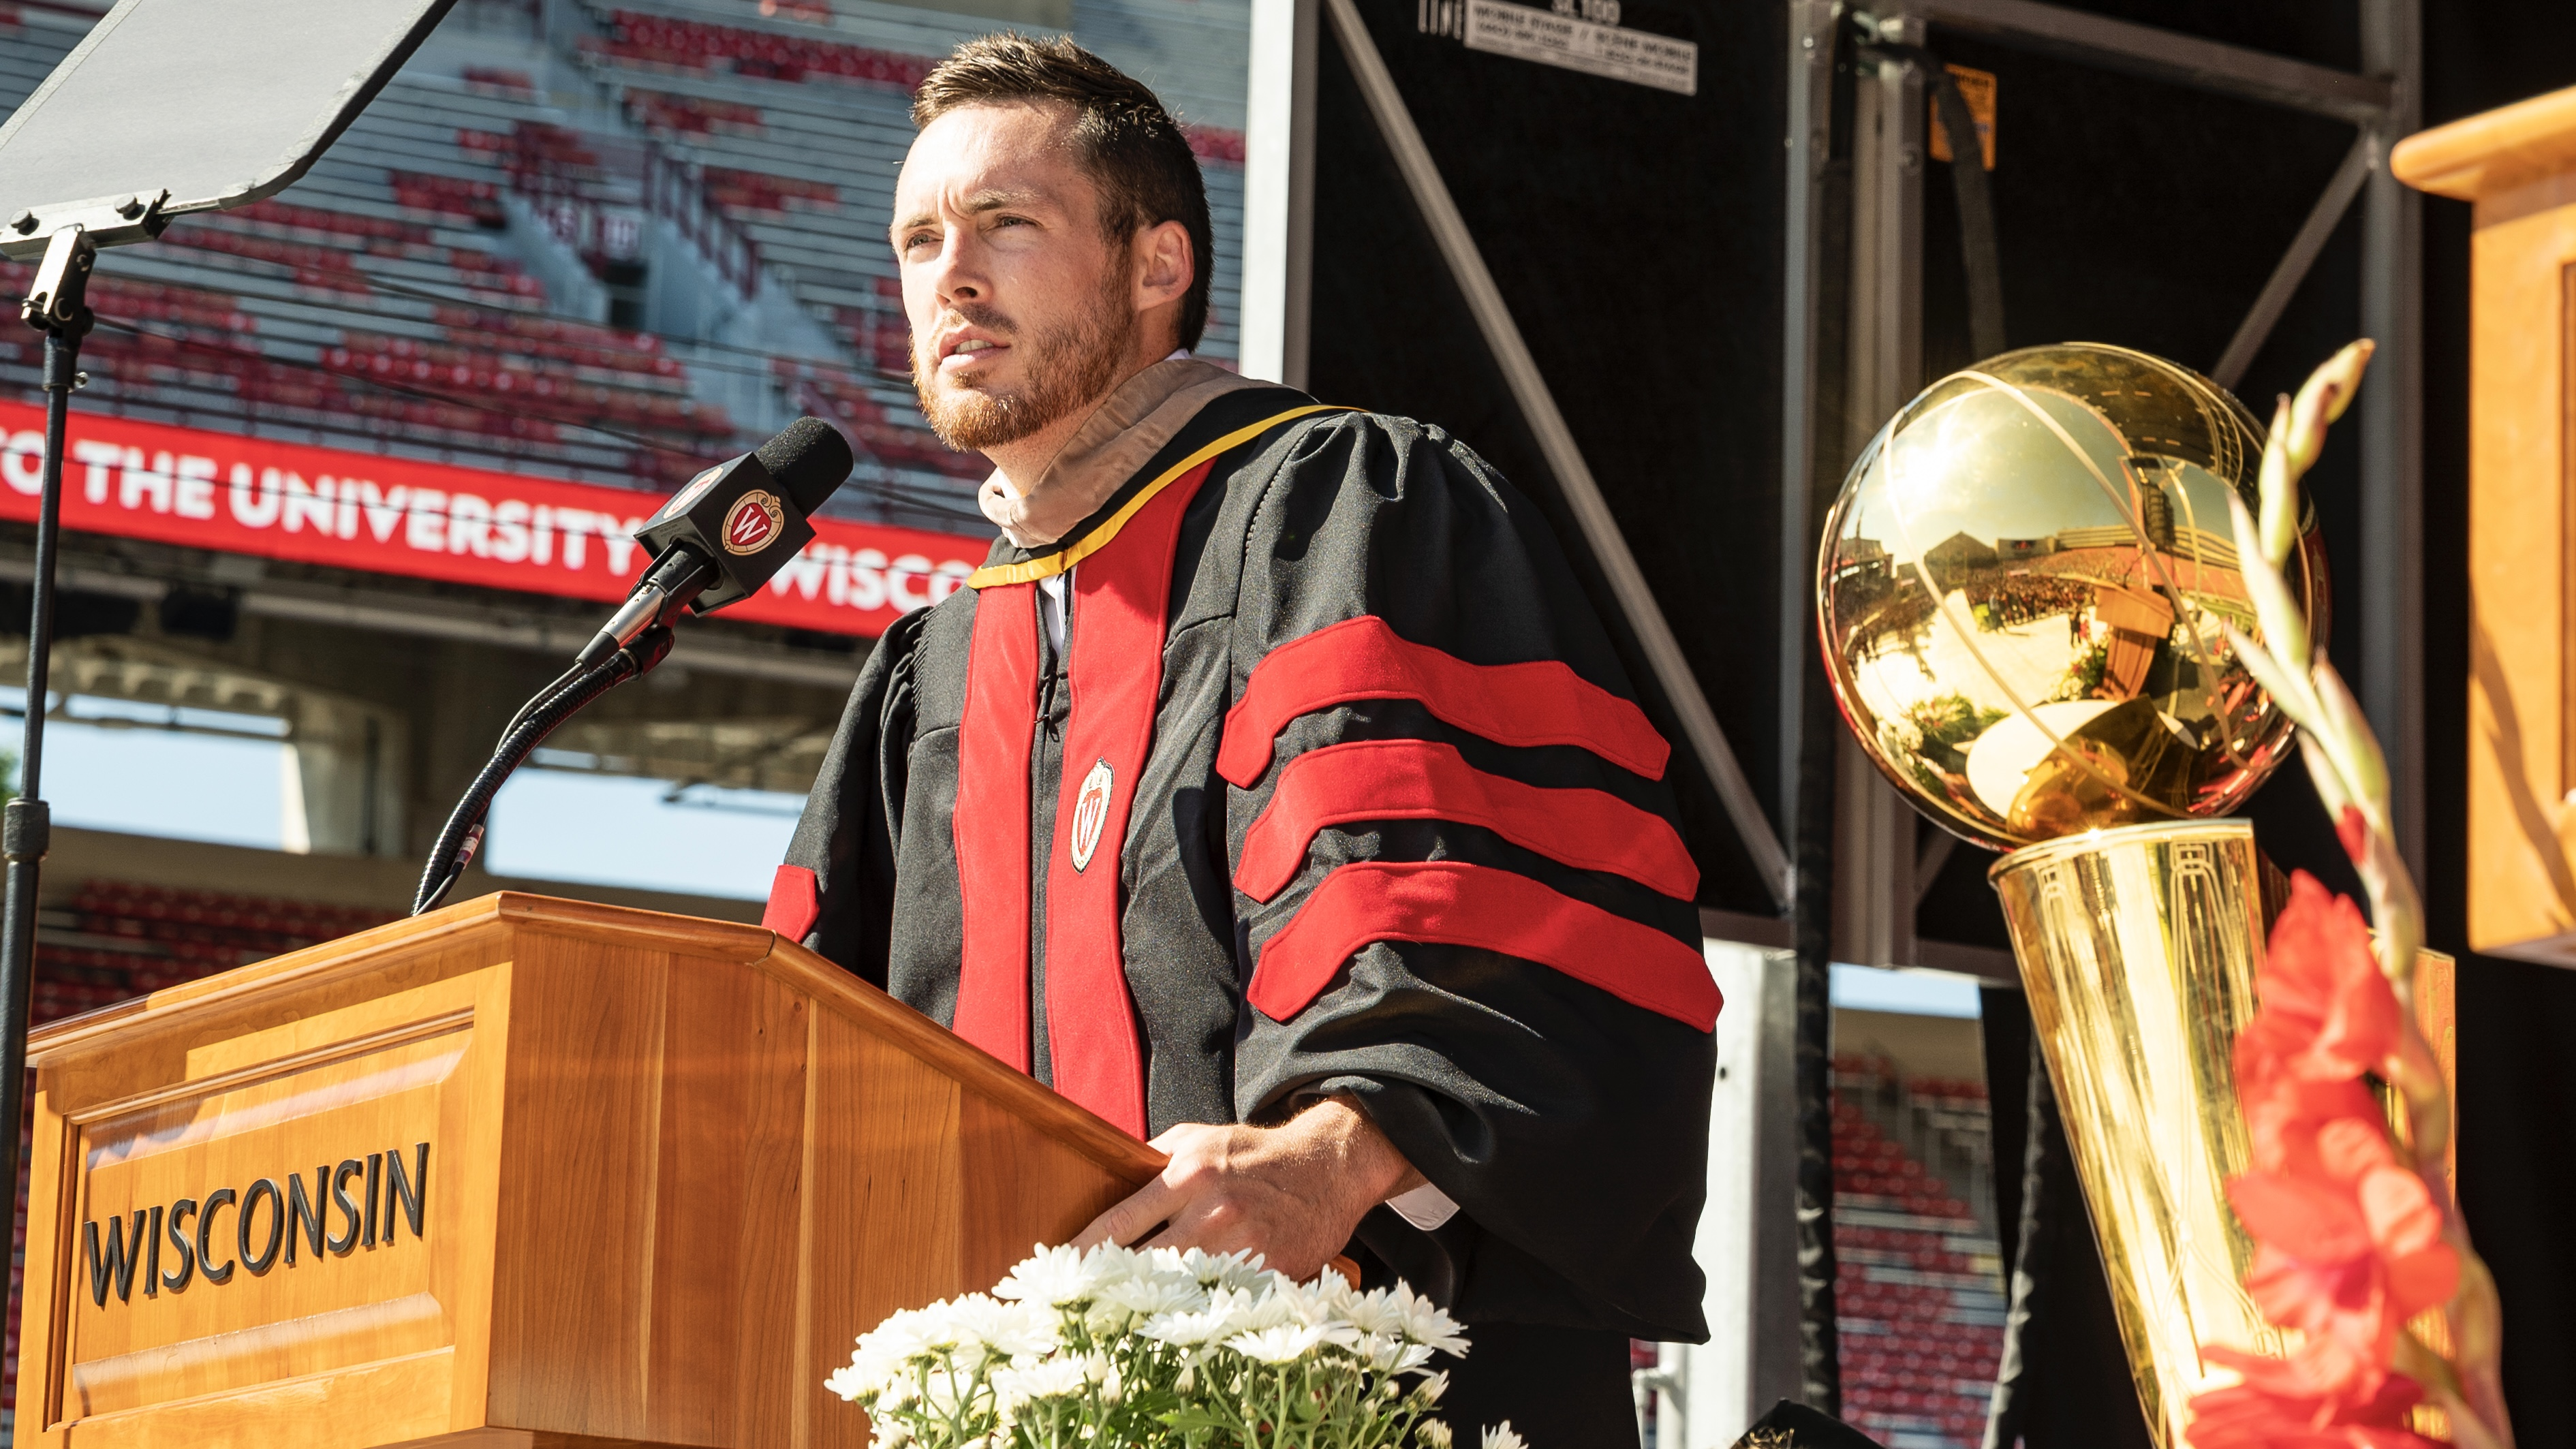 Pat Connaughton Gives University of Wisconsin Class of 2020 Commencement Address